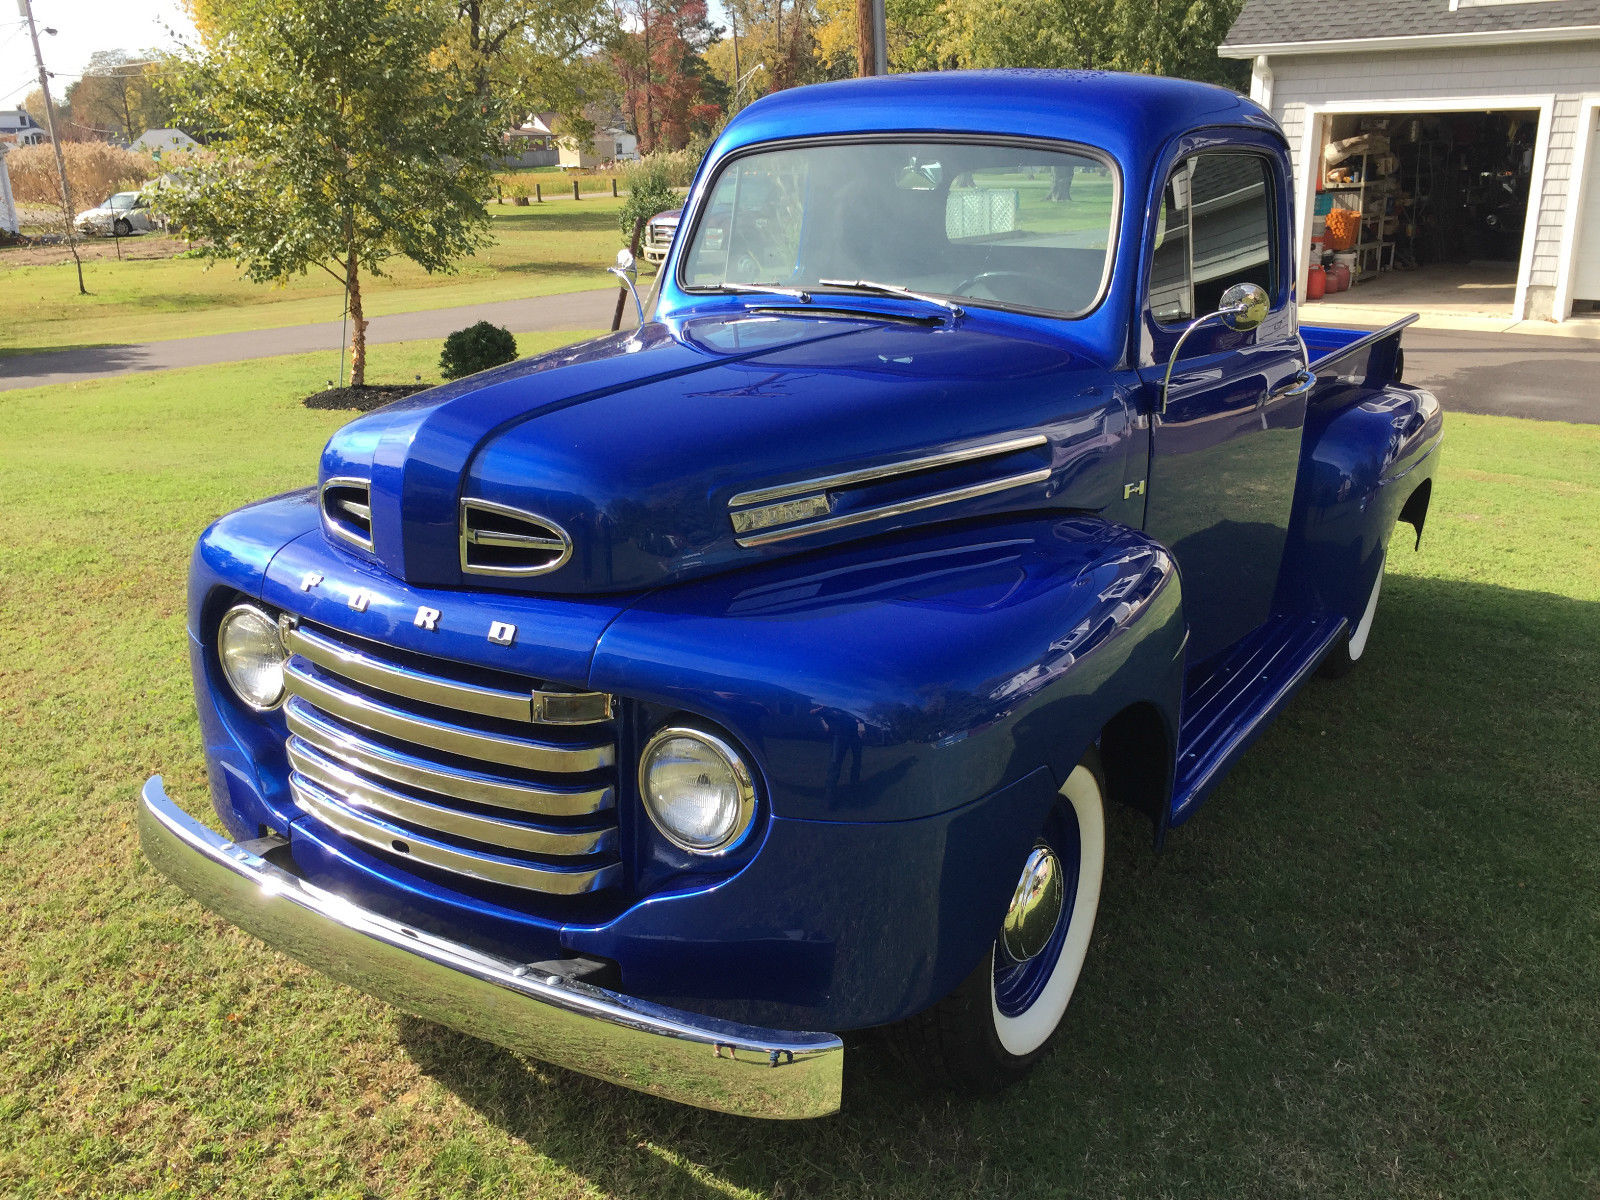 Charming 1948 F 1 Stands The Test Of Time Ford Truck Flathead 6 Electric Blue Is Packed With A Legendary V8 But Who Cares About Speed When Cruising Around In This Classic Early Trucks